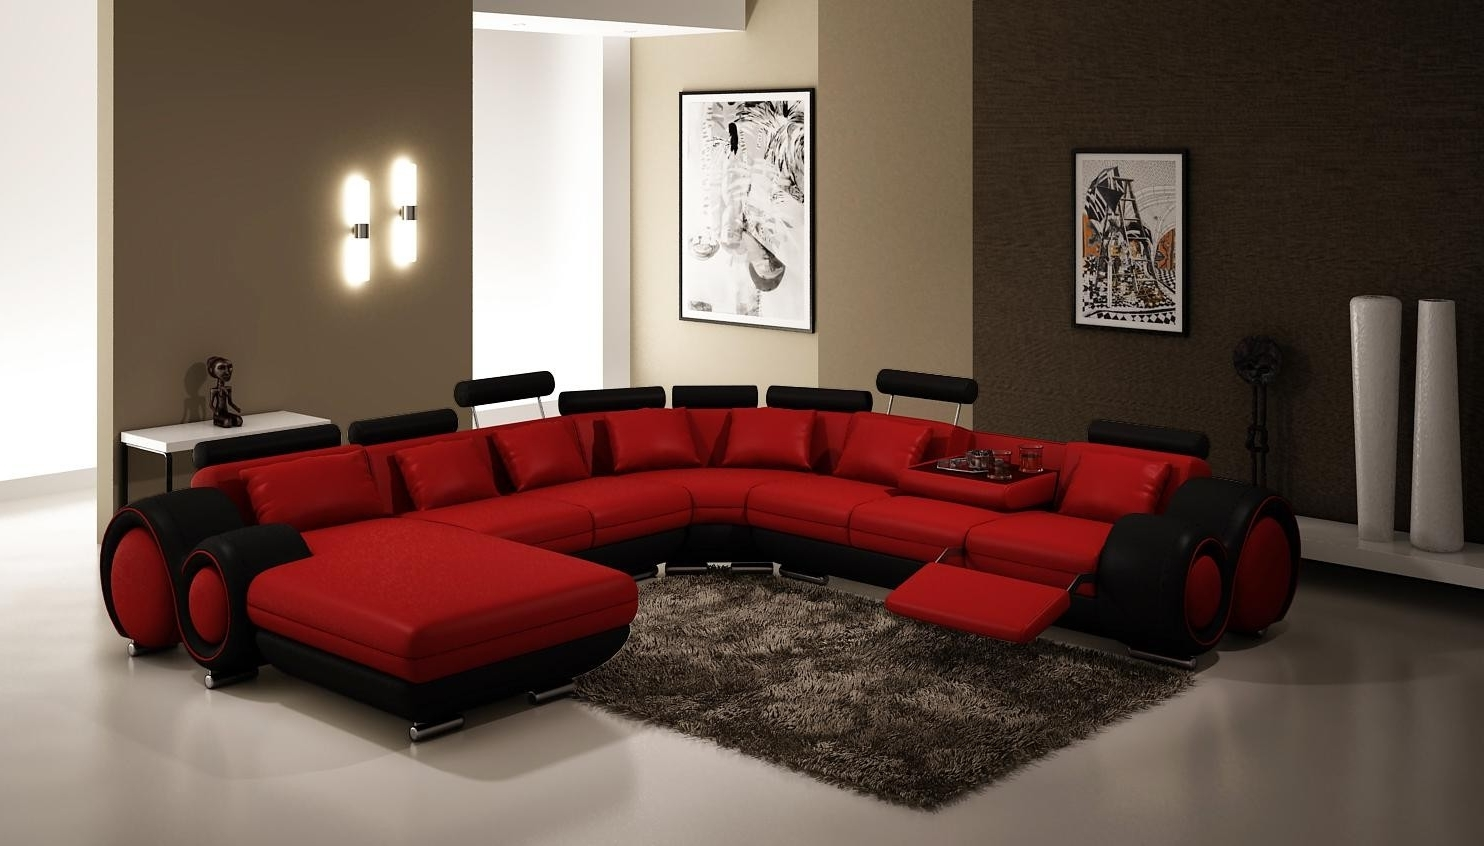 Popular Furniture 4084 Contemporary Red And Black Sectional Sofa Throughout Red Black Sectional Sofas (View 4 of 15)